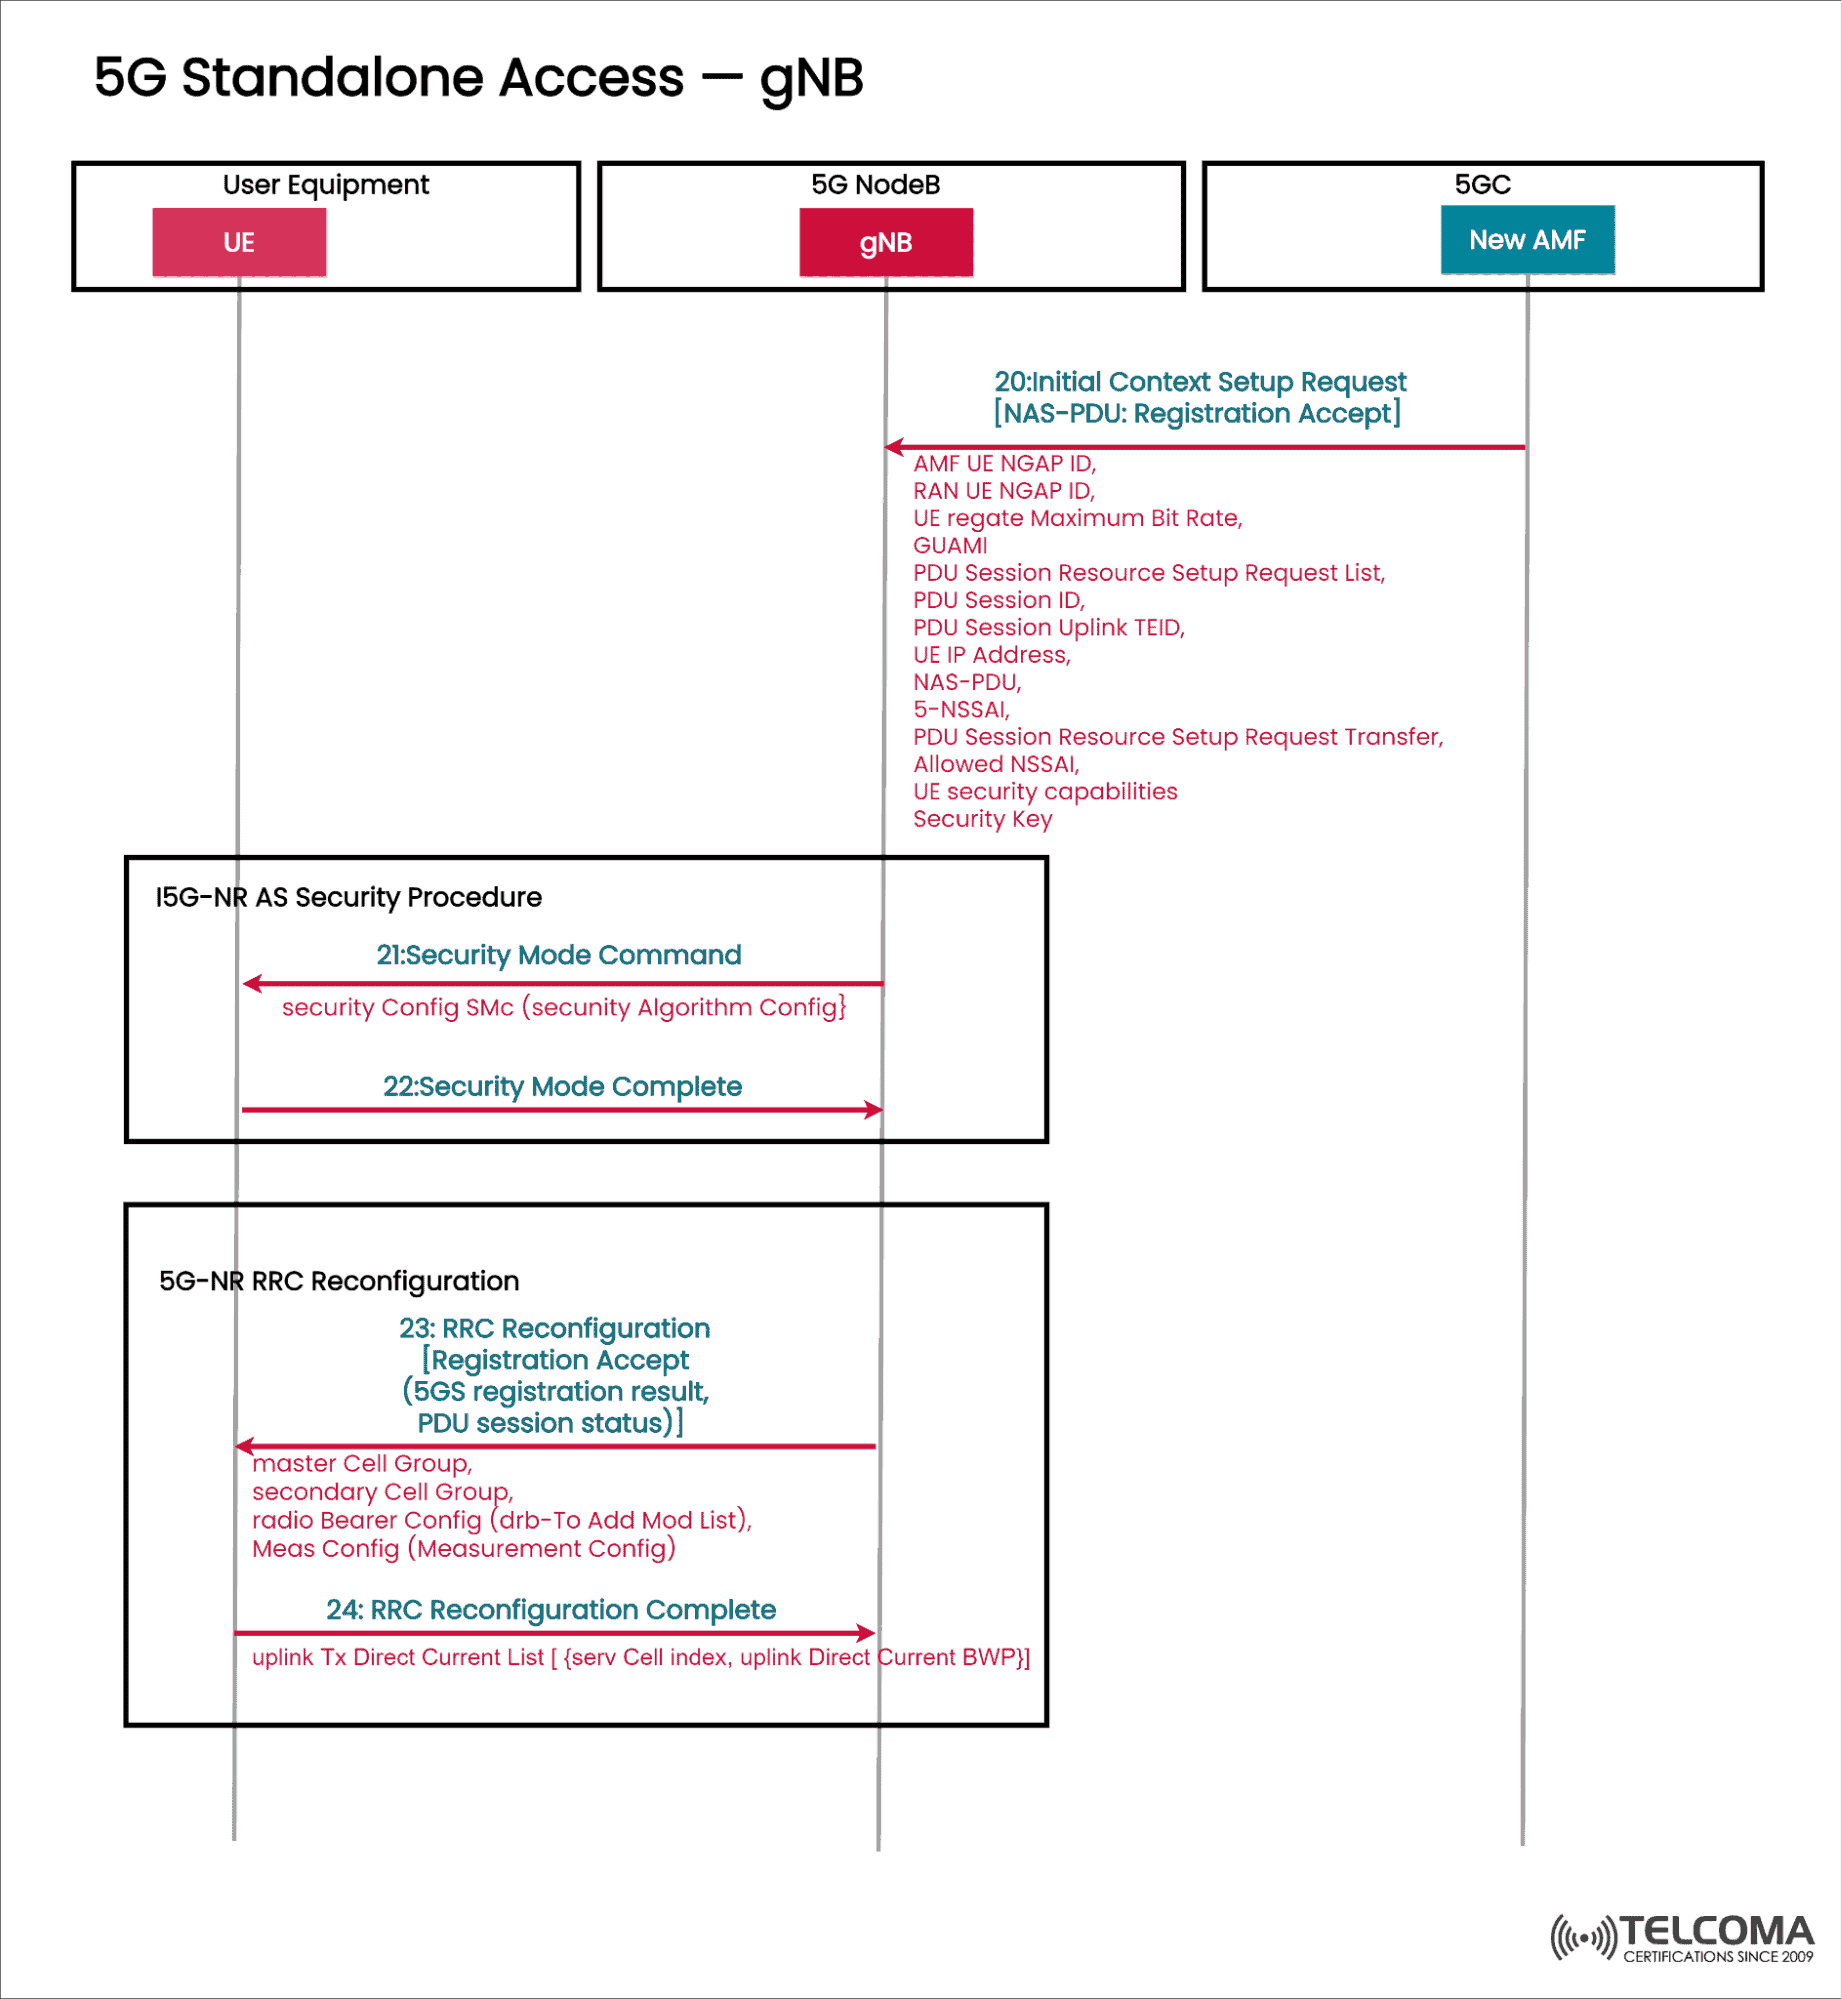 gNB interactions in 5g standalone